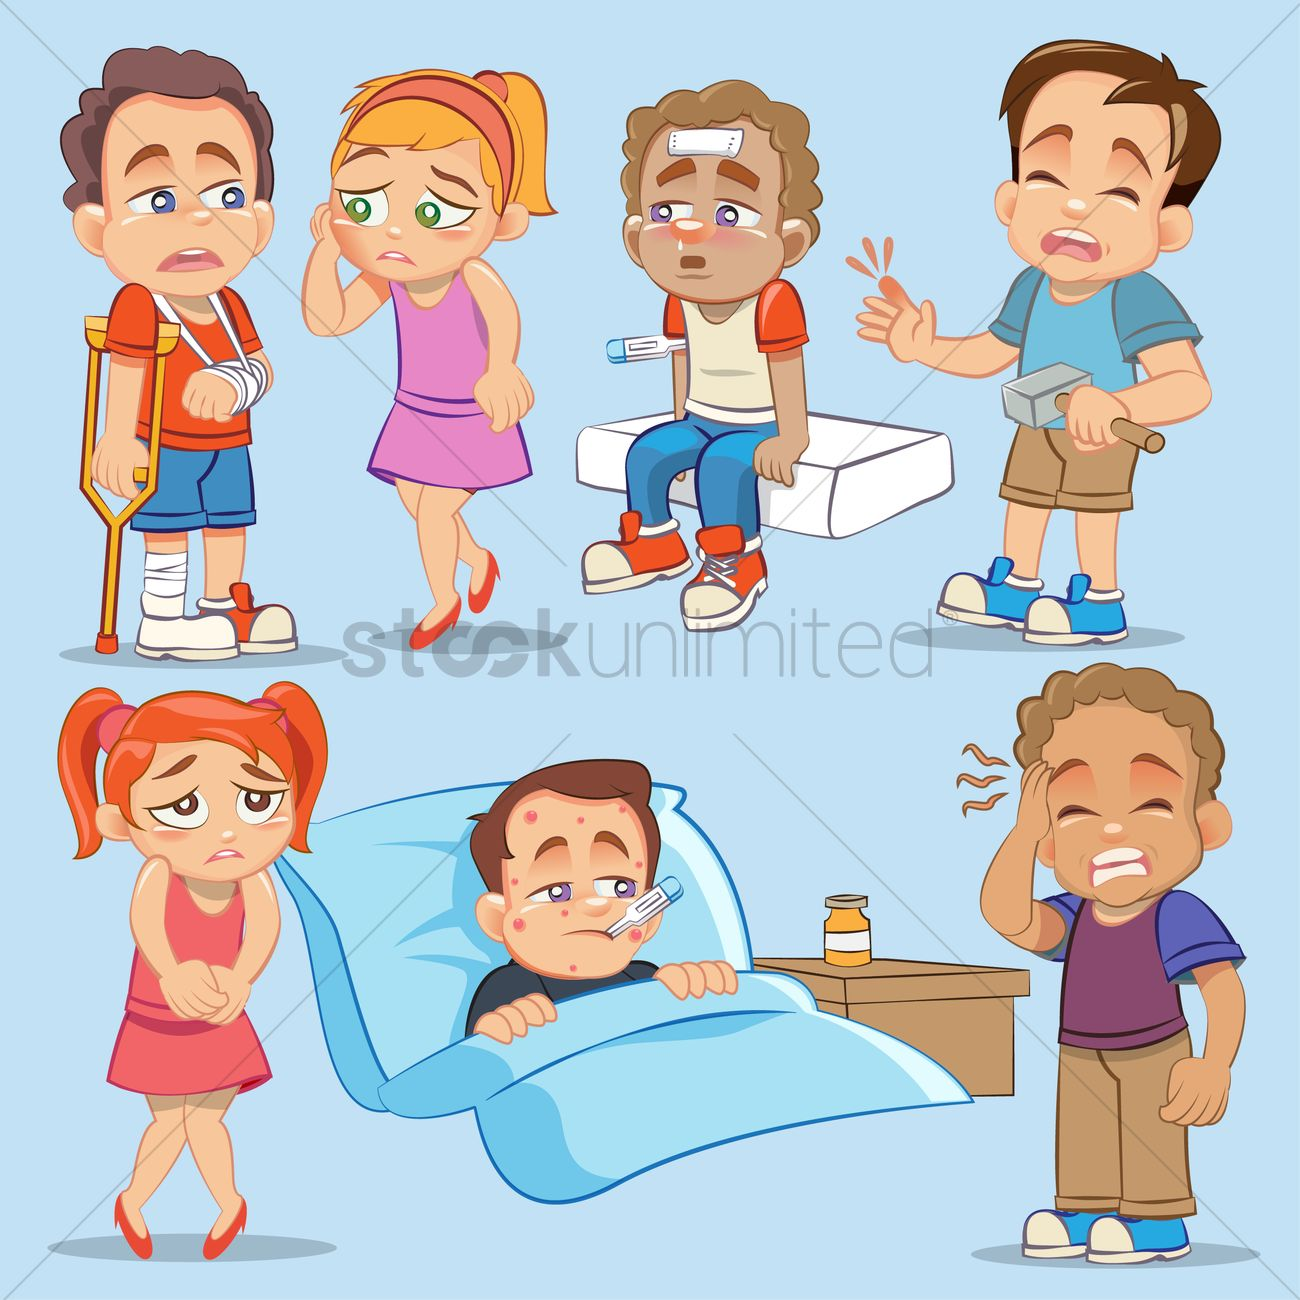 Sick or hurt clipart picture transparent stock Hurt clipart injured child - 123 transparent clip arts ... picture transparent stock